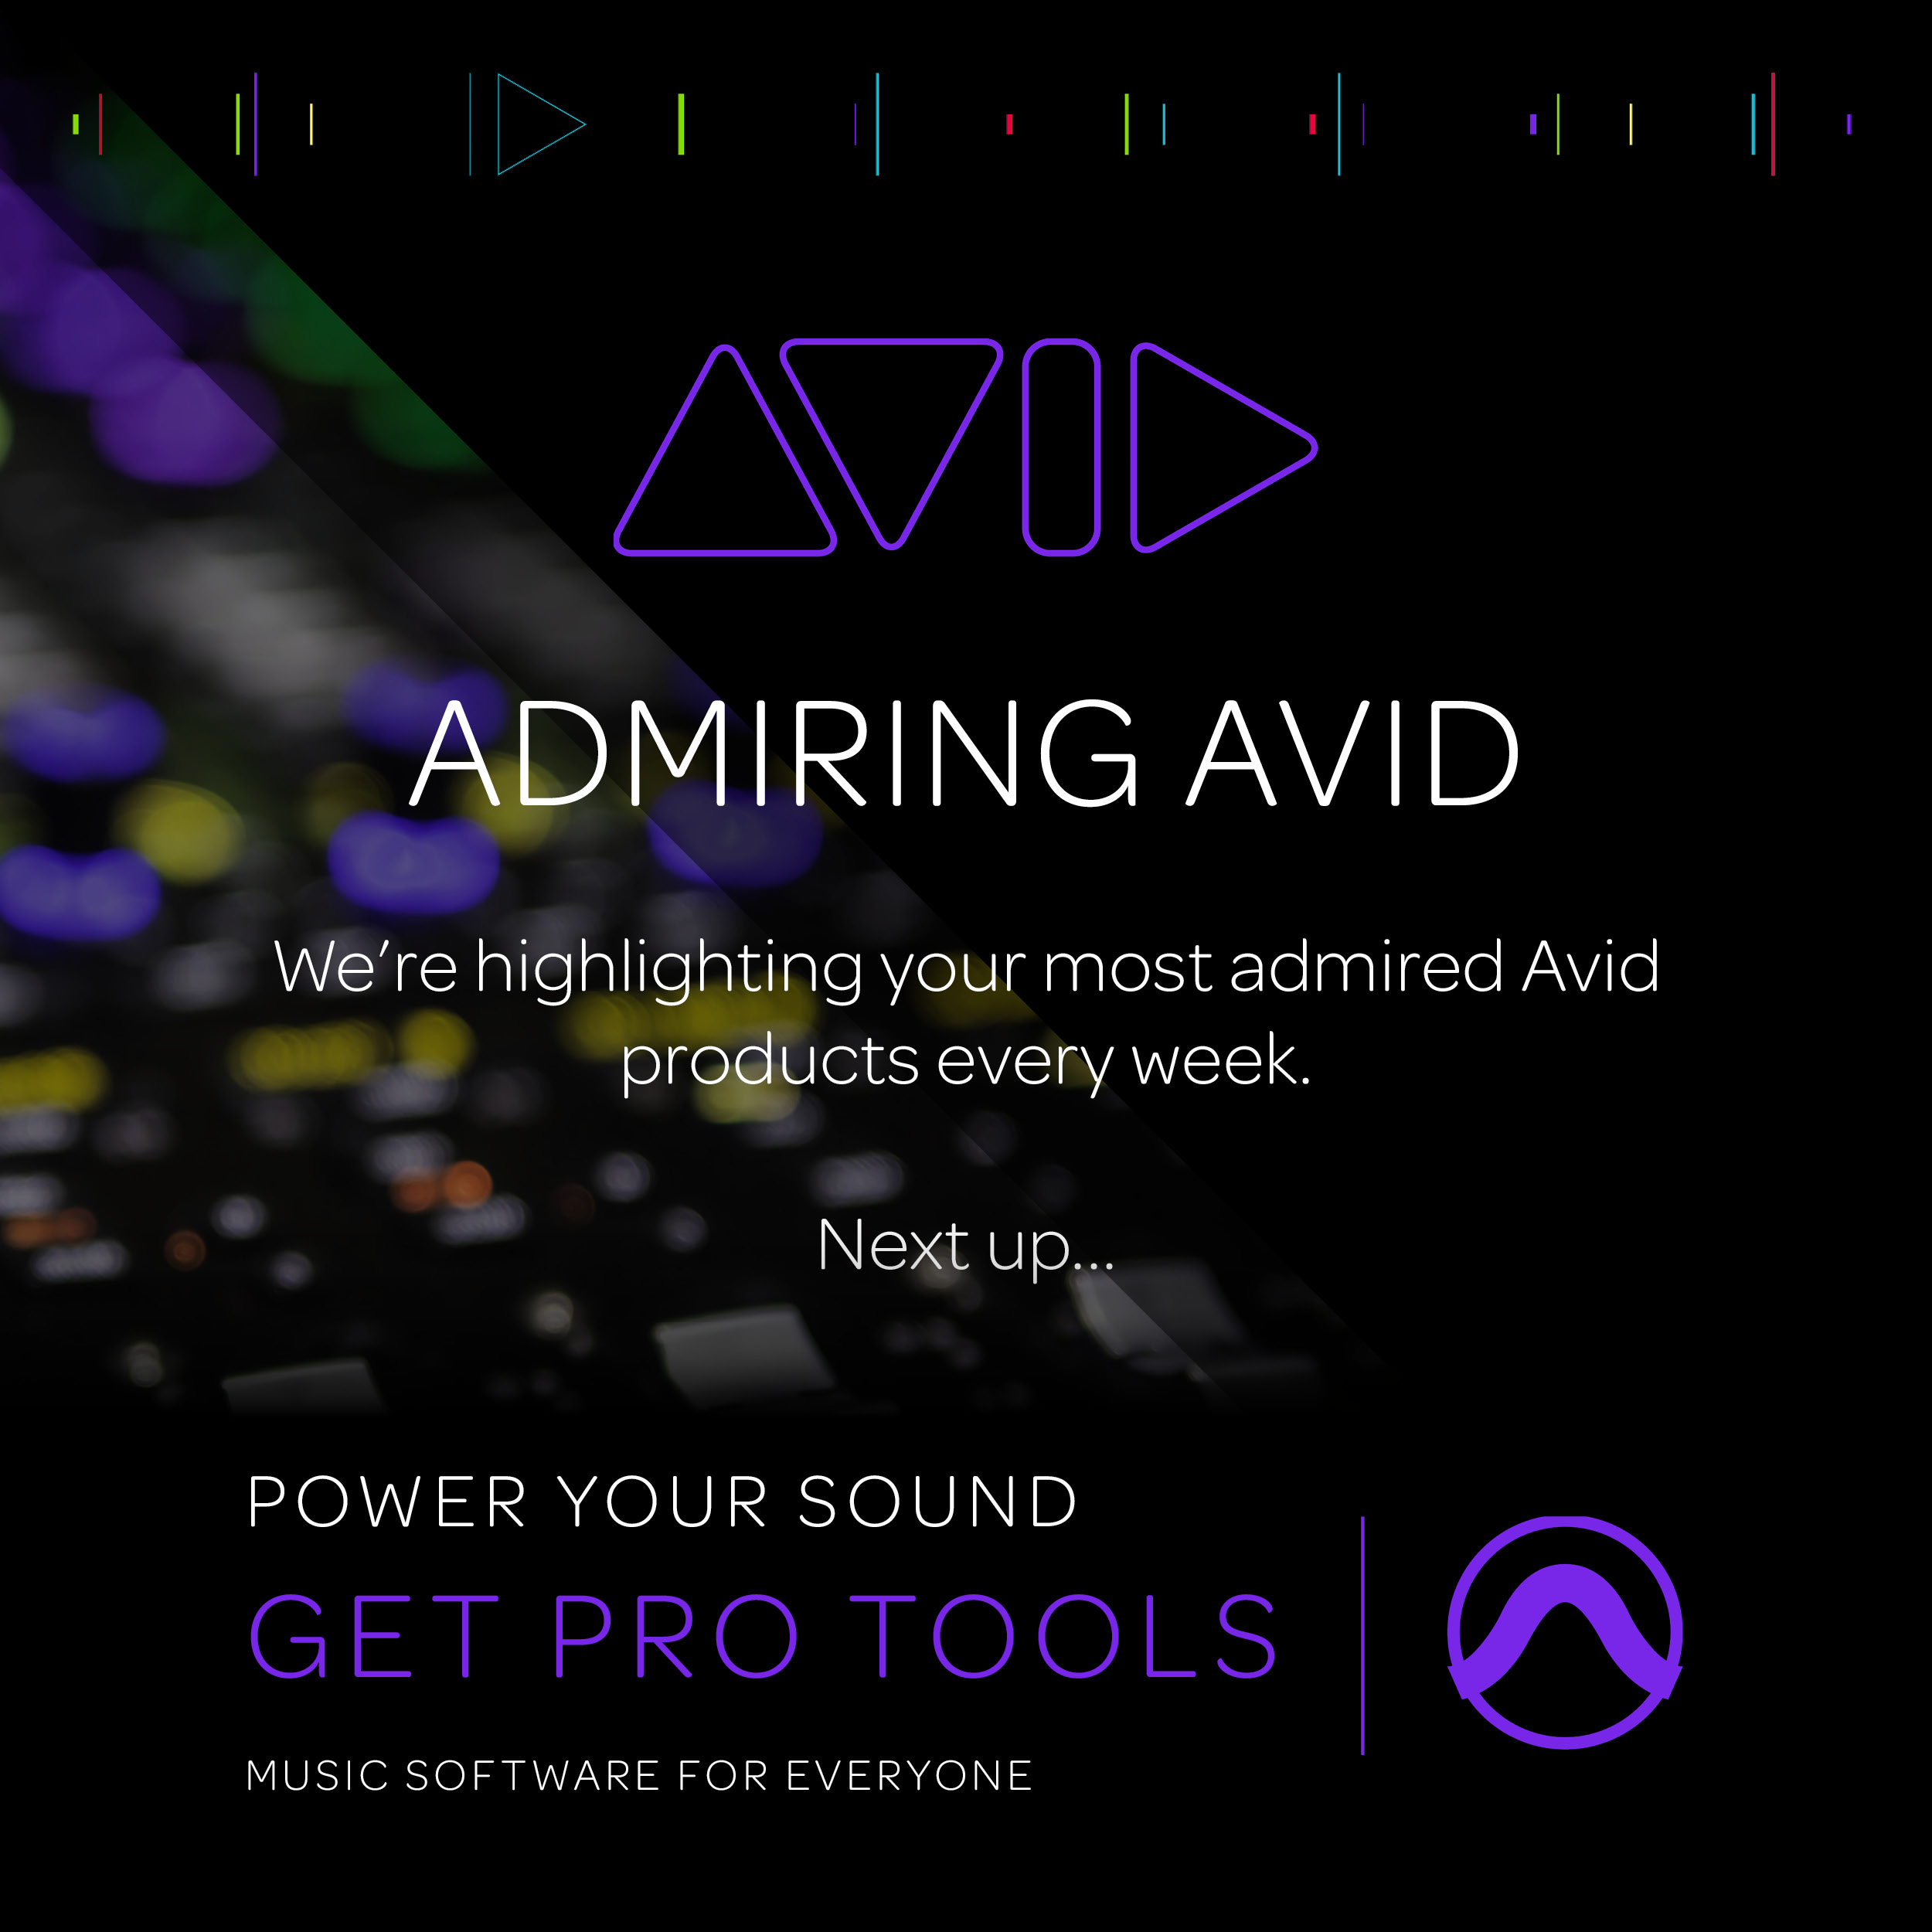 Admiring Avid | We're highlighting your most admired Avid products every week. Next up… Pro Tools, music software for everyone!